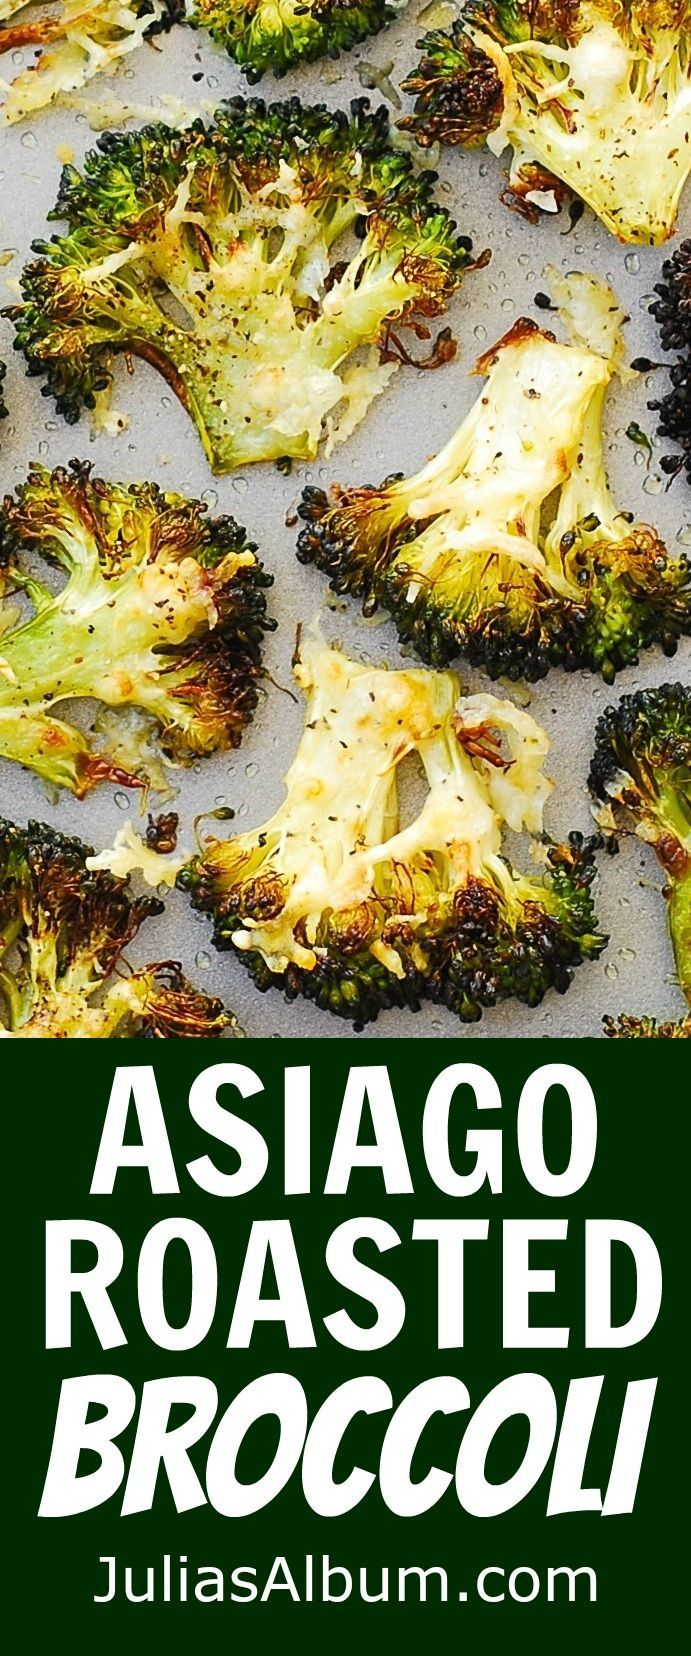 Asiago Roasted Broccoli - Crusty, crunchy, delicious side dish or just ...